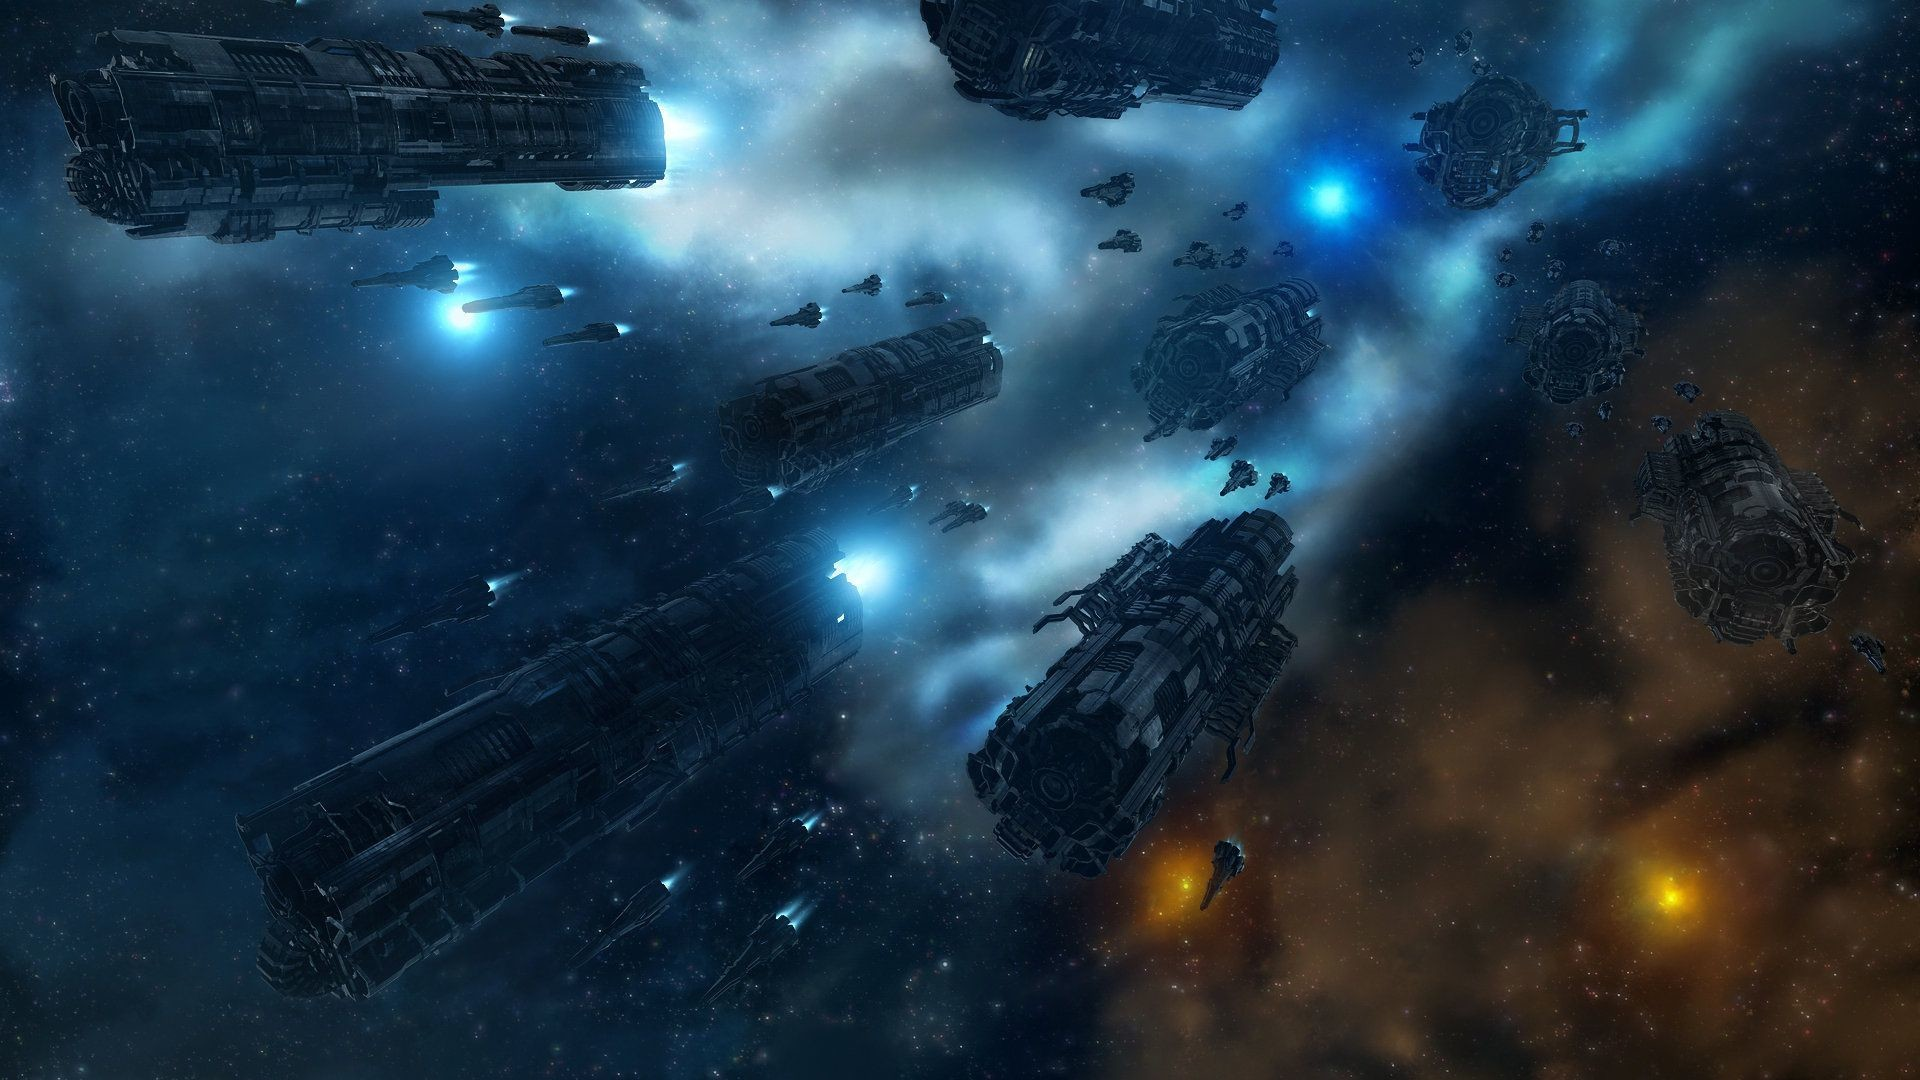 1920x1080 Spaceship Wallpaper Hd wallpaper - 1246148